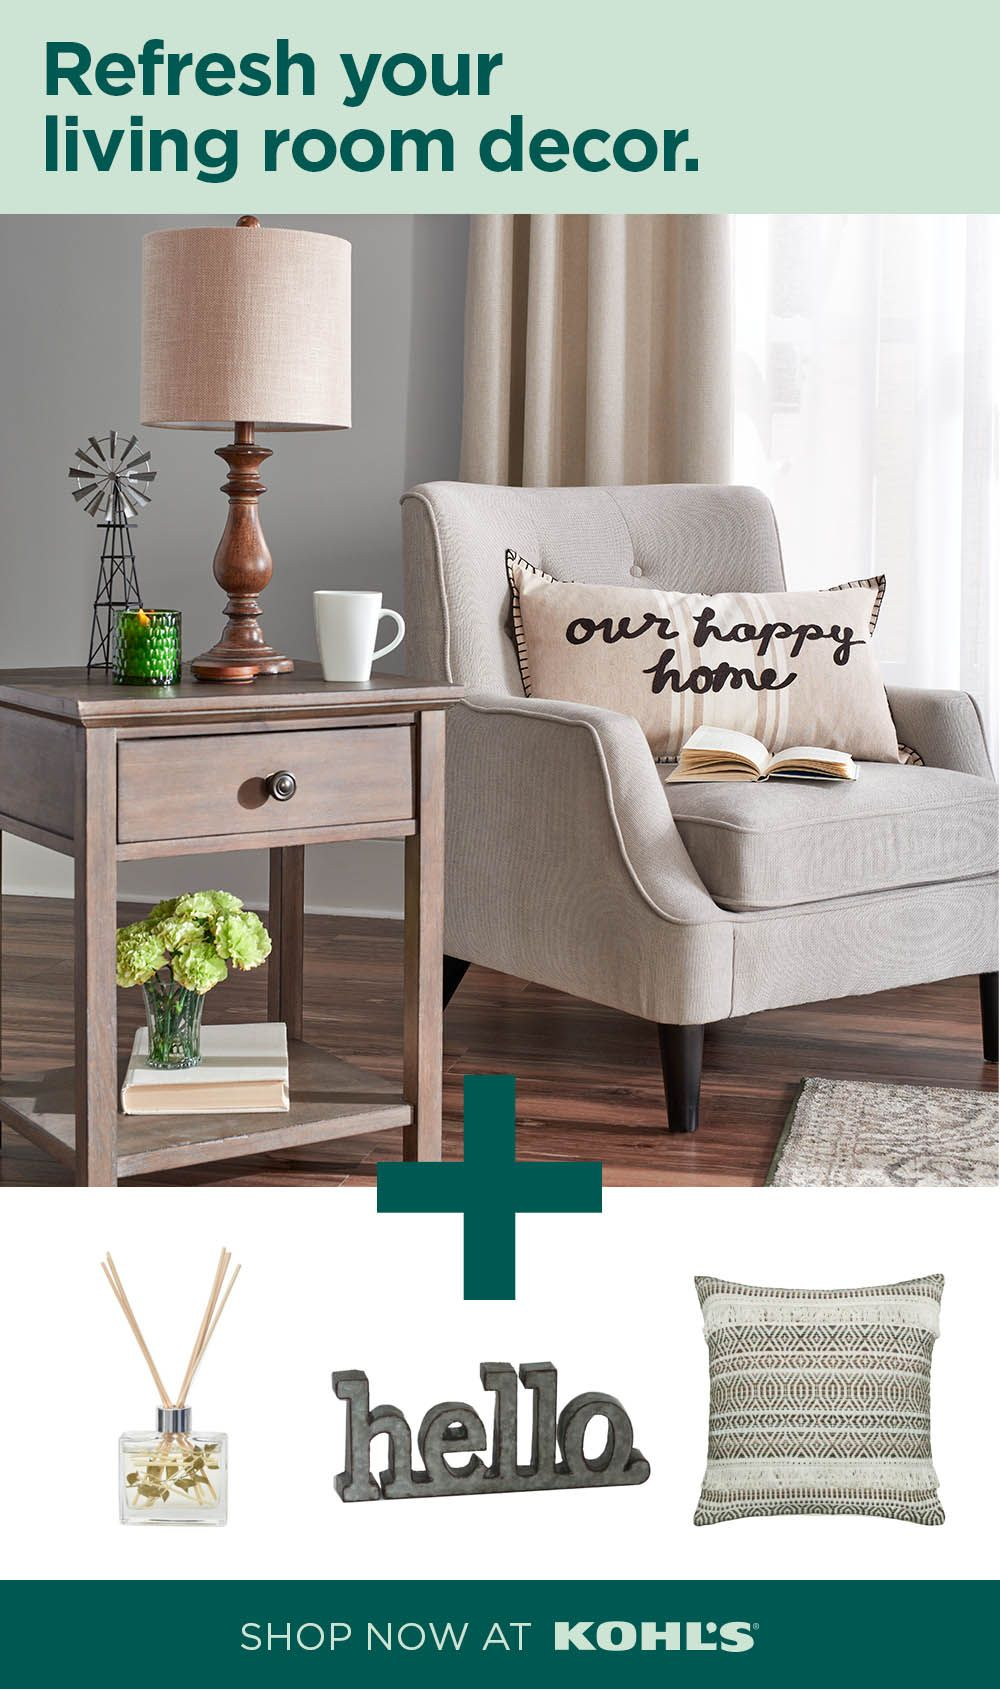 Time For A Refresh Swap Out Your Decor With Fun Fresh Style